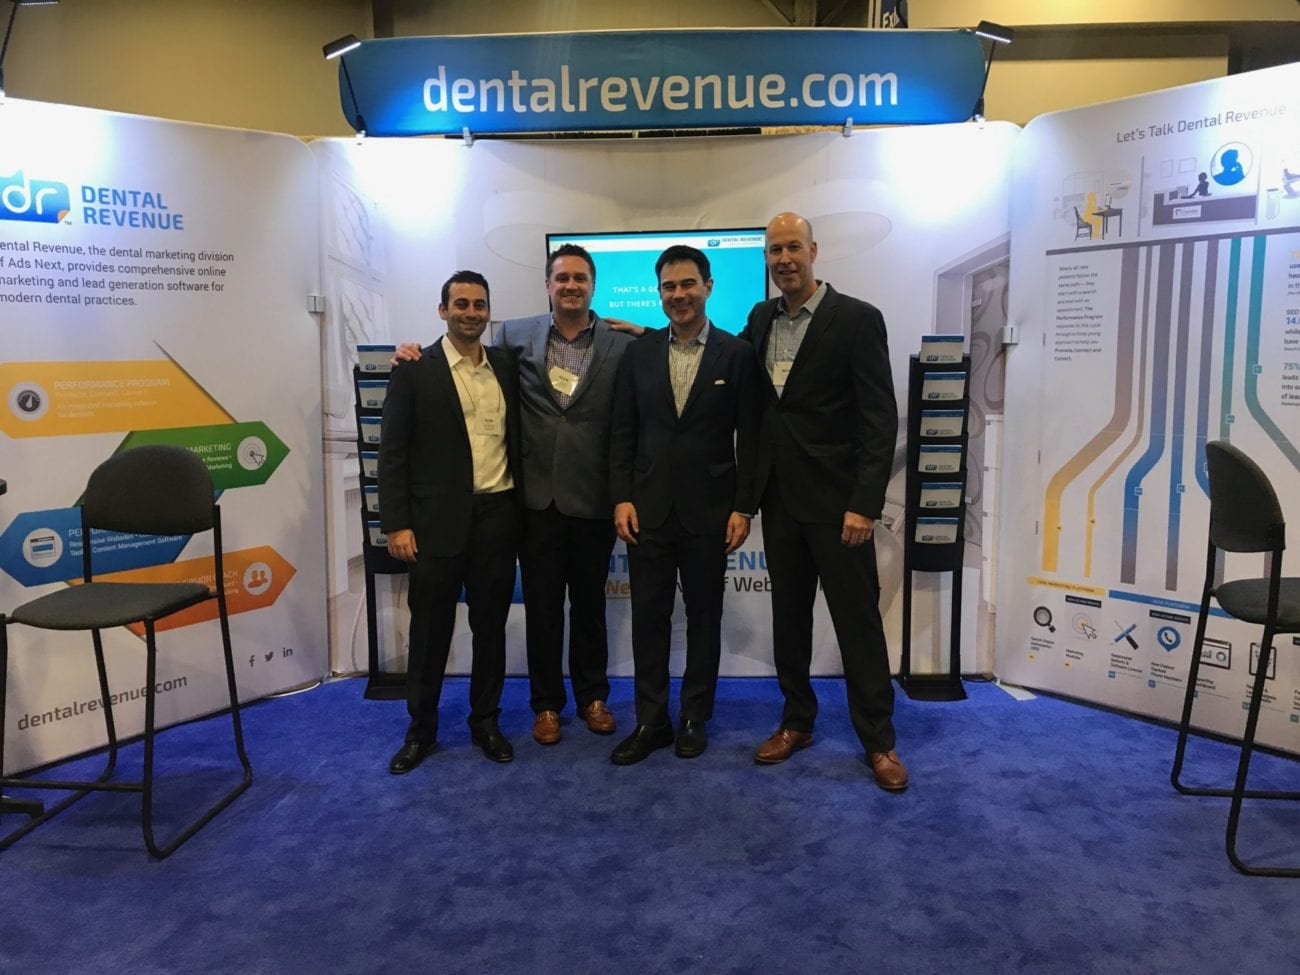 dental revenue team at aacd 2017